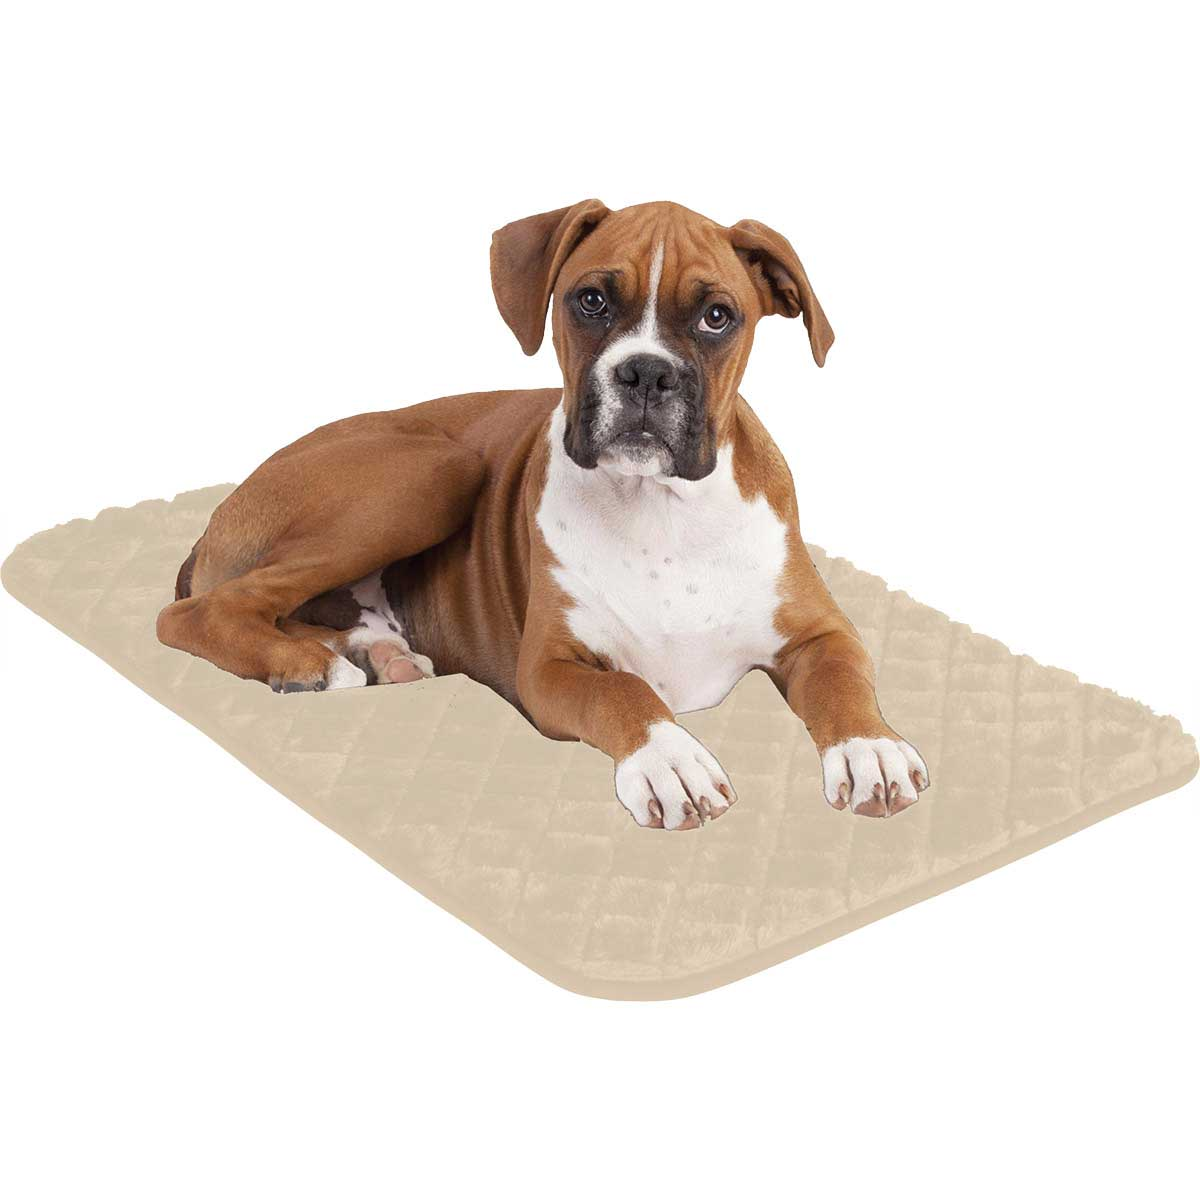 Snoozzy Sleeper Natural for Dogs 23 inches by 17 inches